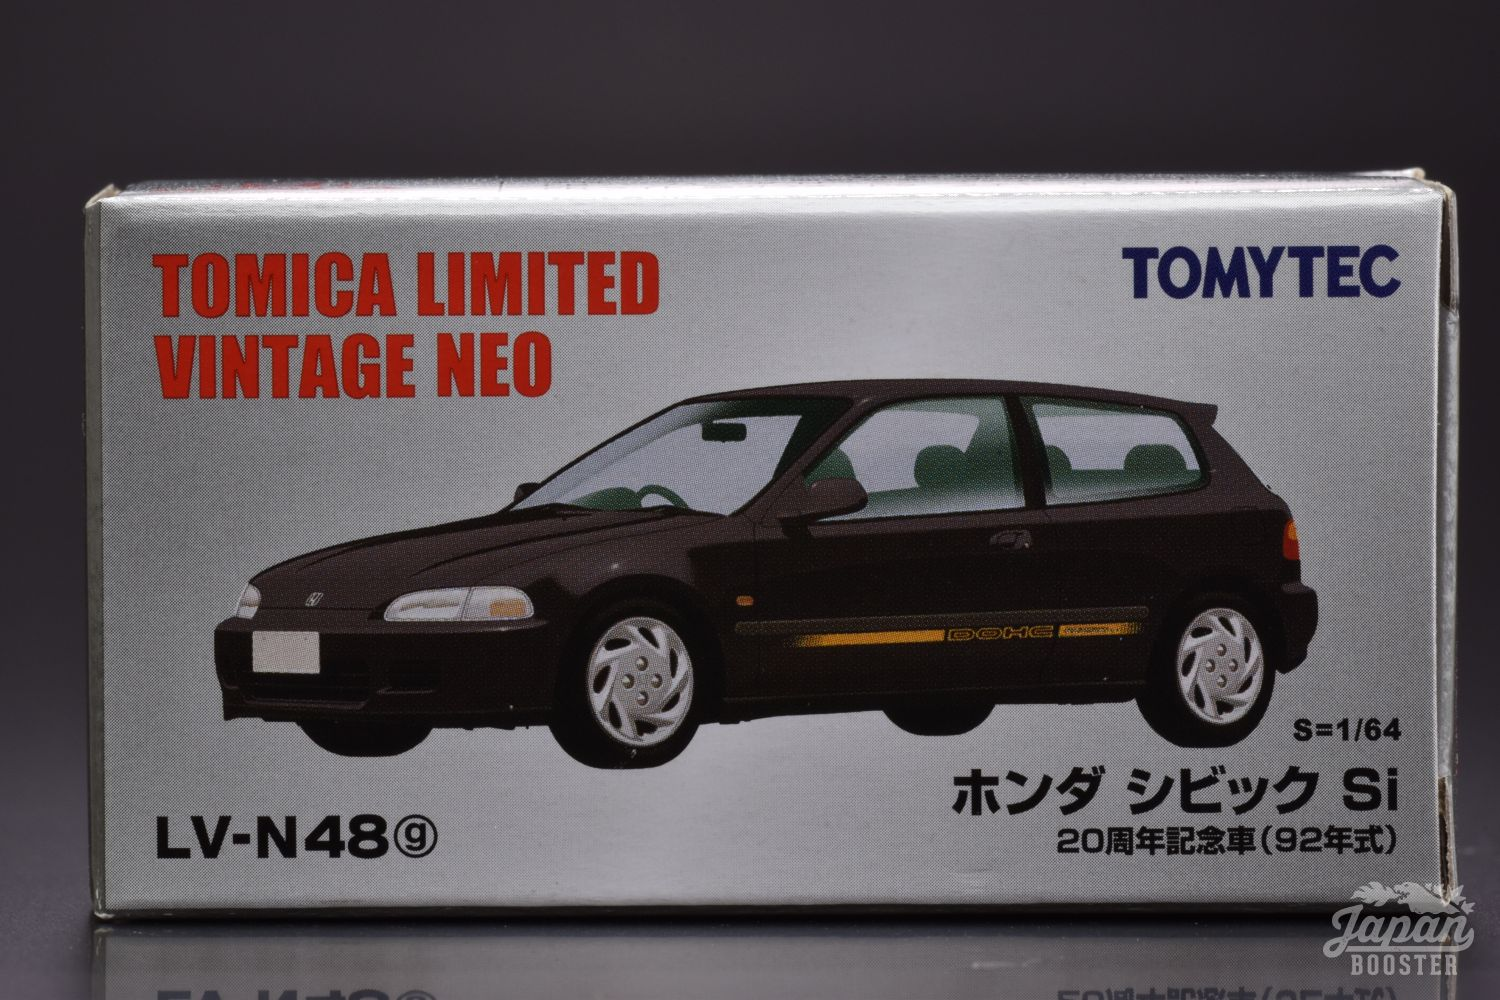 NEW TOMICA LIMITED VINTAGE NEO LV-N48g 1//64HONDA CIVIC Si 1992 20th ANNIVERSARY